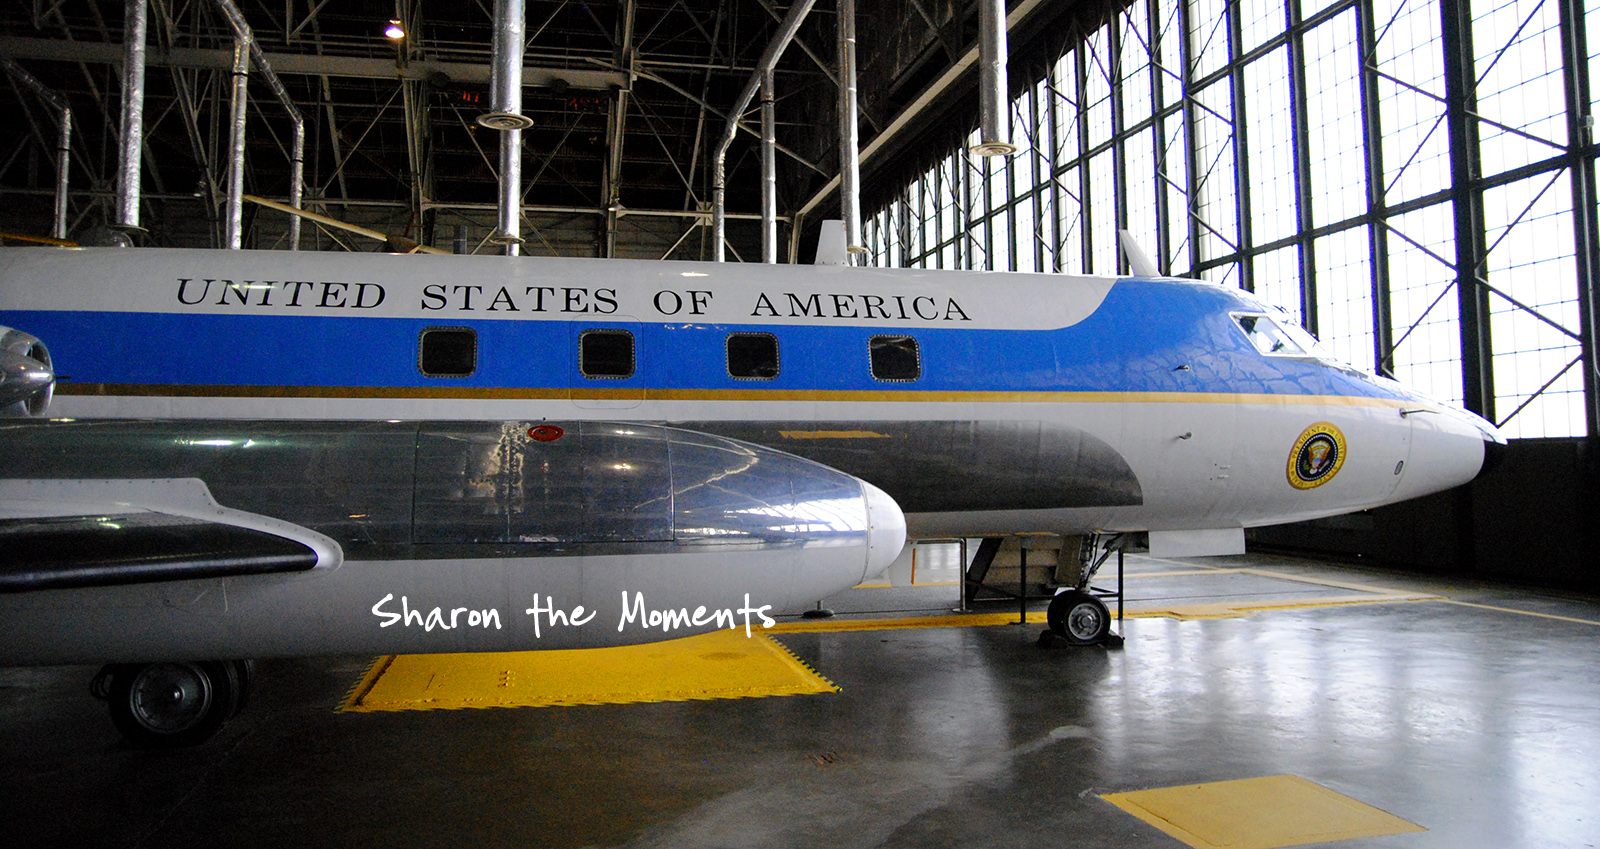 Hodgepodge Wednesday National Museum of UA Air Force|Sharon the Moments blog